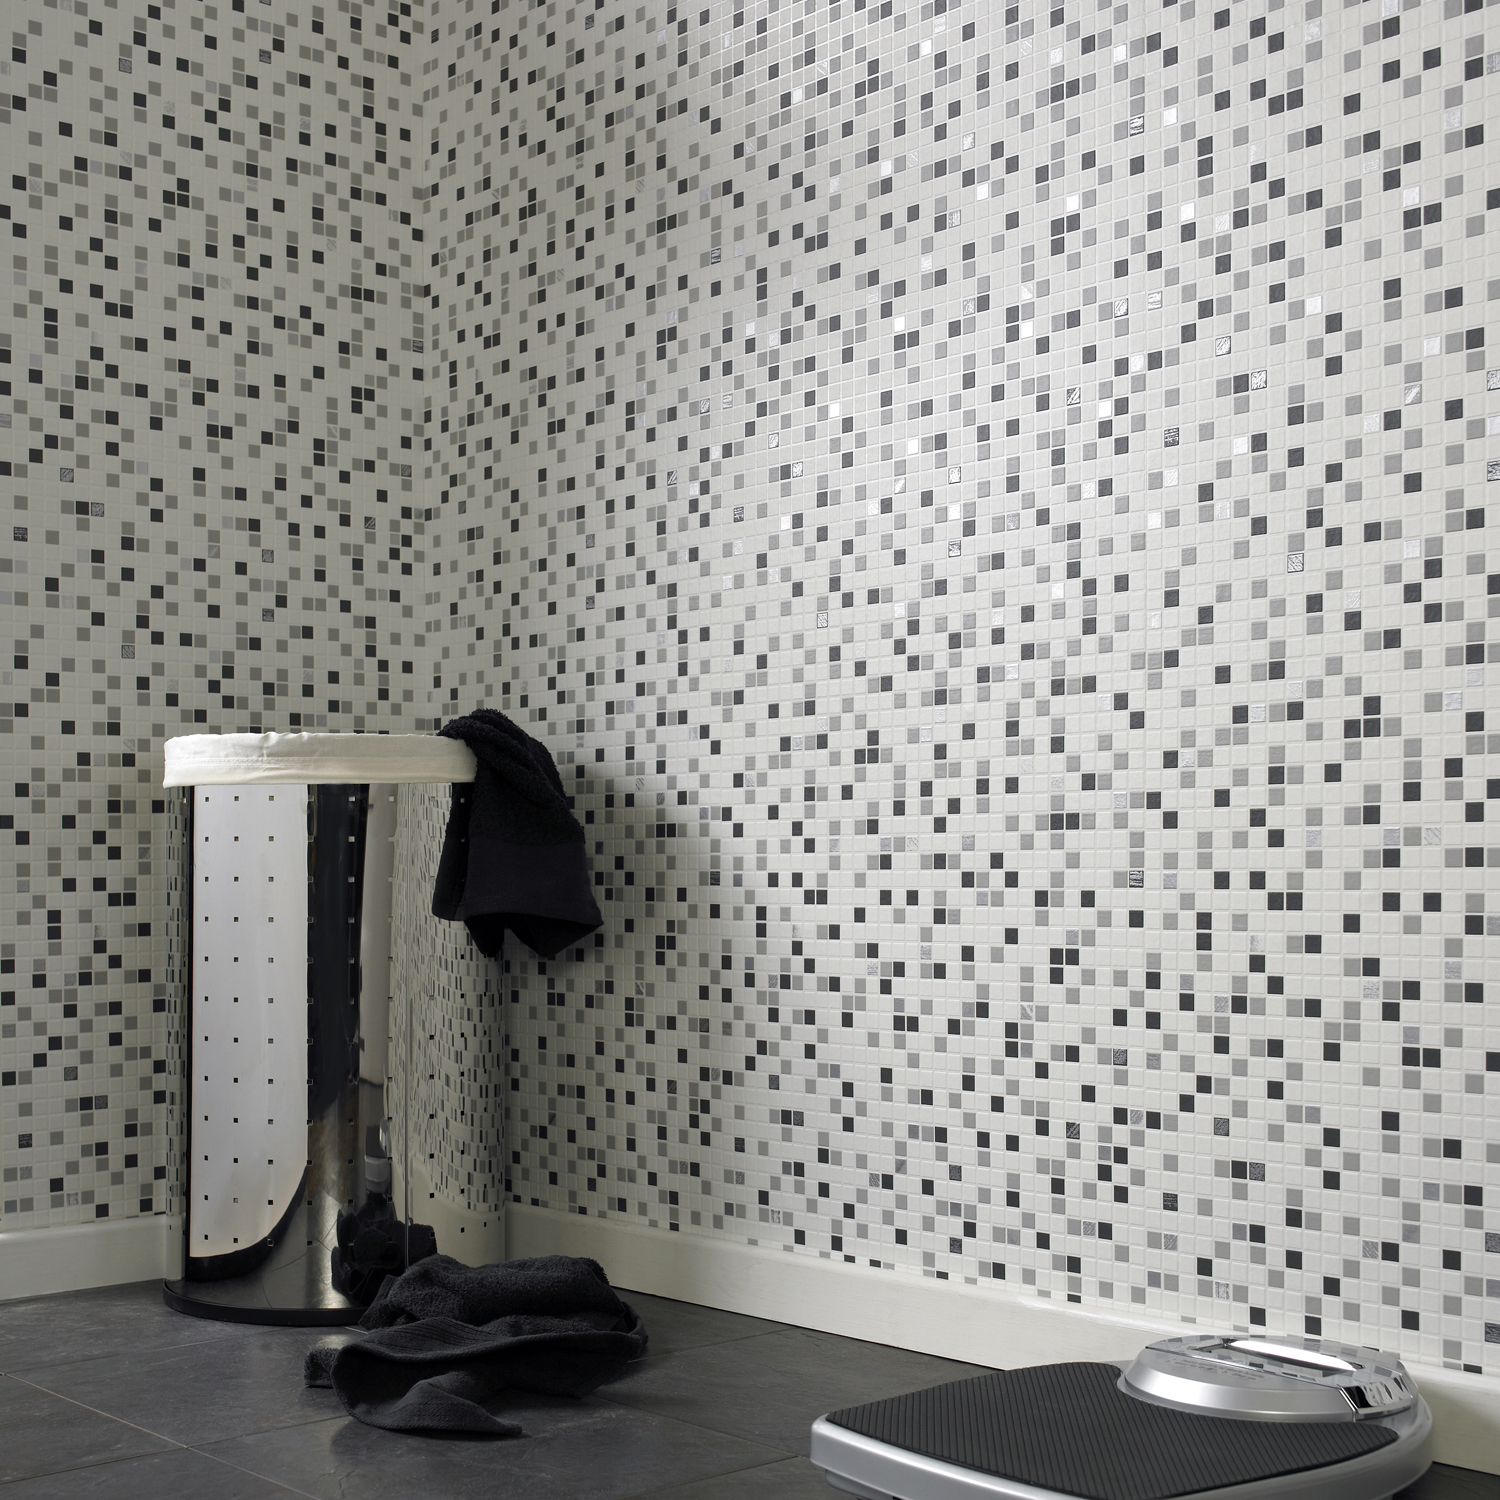 Contour Checkered Tile Effect Kitchen Bathroom Black White Silver Wallpaper Ebay